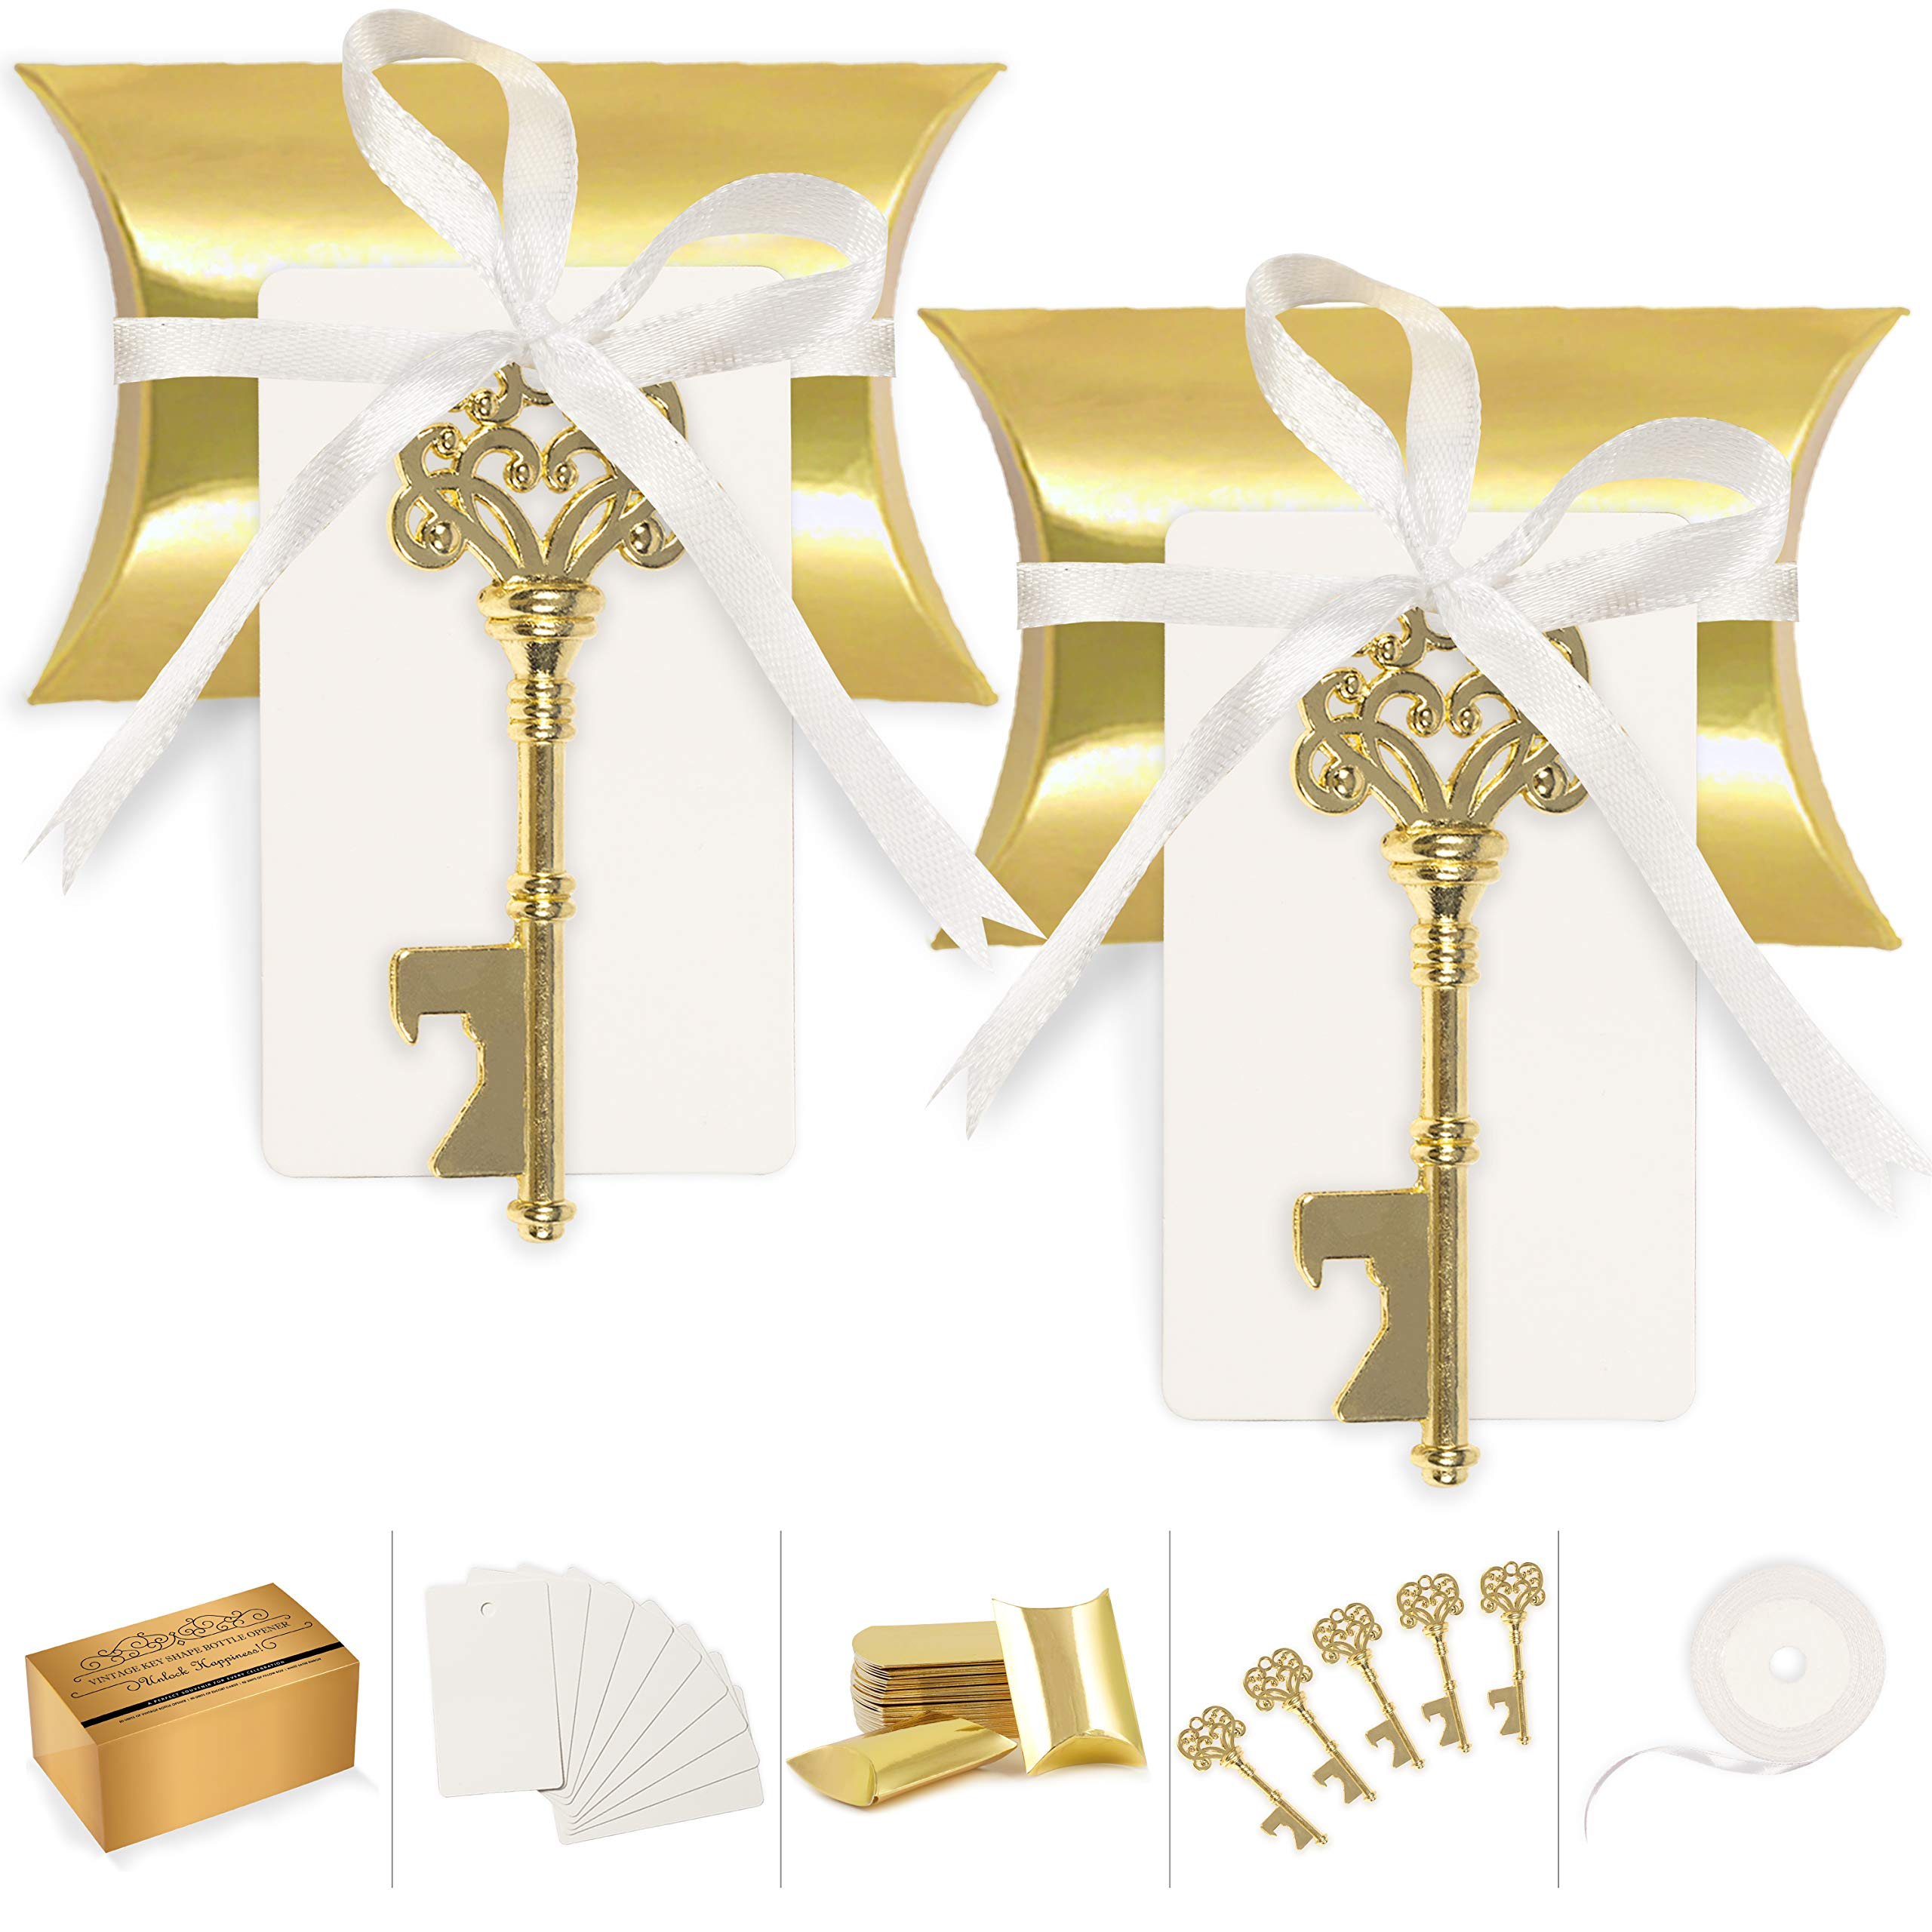 Wedding Favors for Guests Party Favor Vintage Skeleton Key Bottle Opener with Escort Card Tag Pillow Candy Box and Satin Ribbon 50 Pcs (Gold) by Double Down